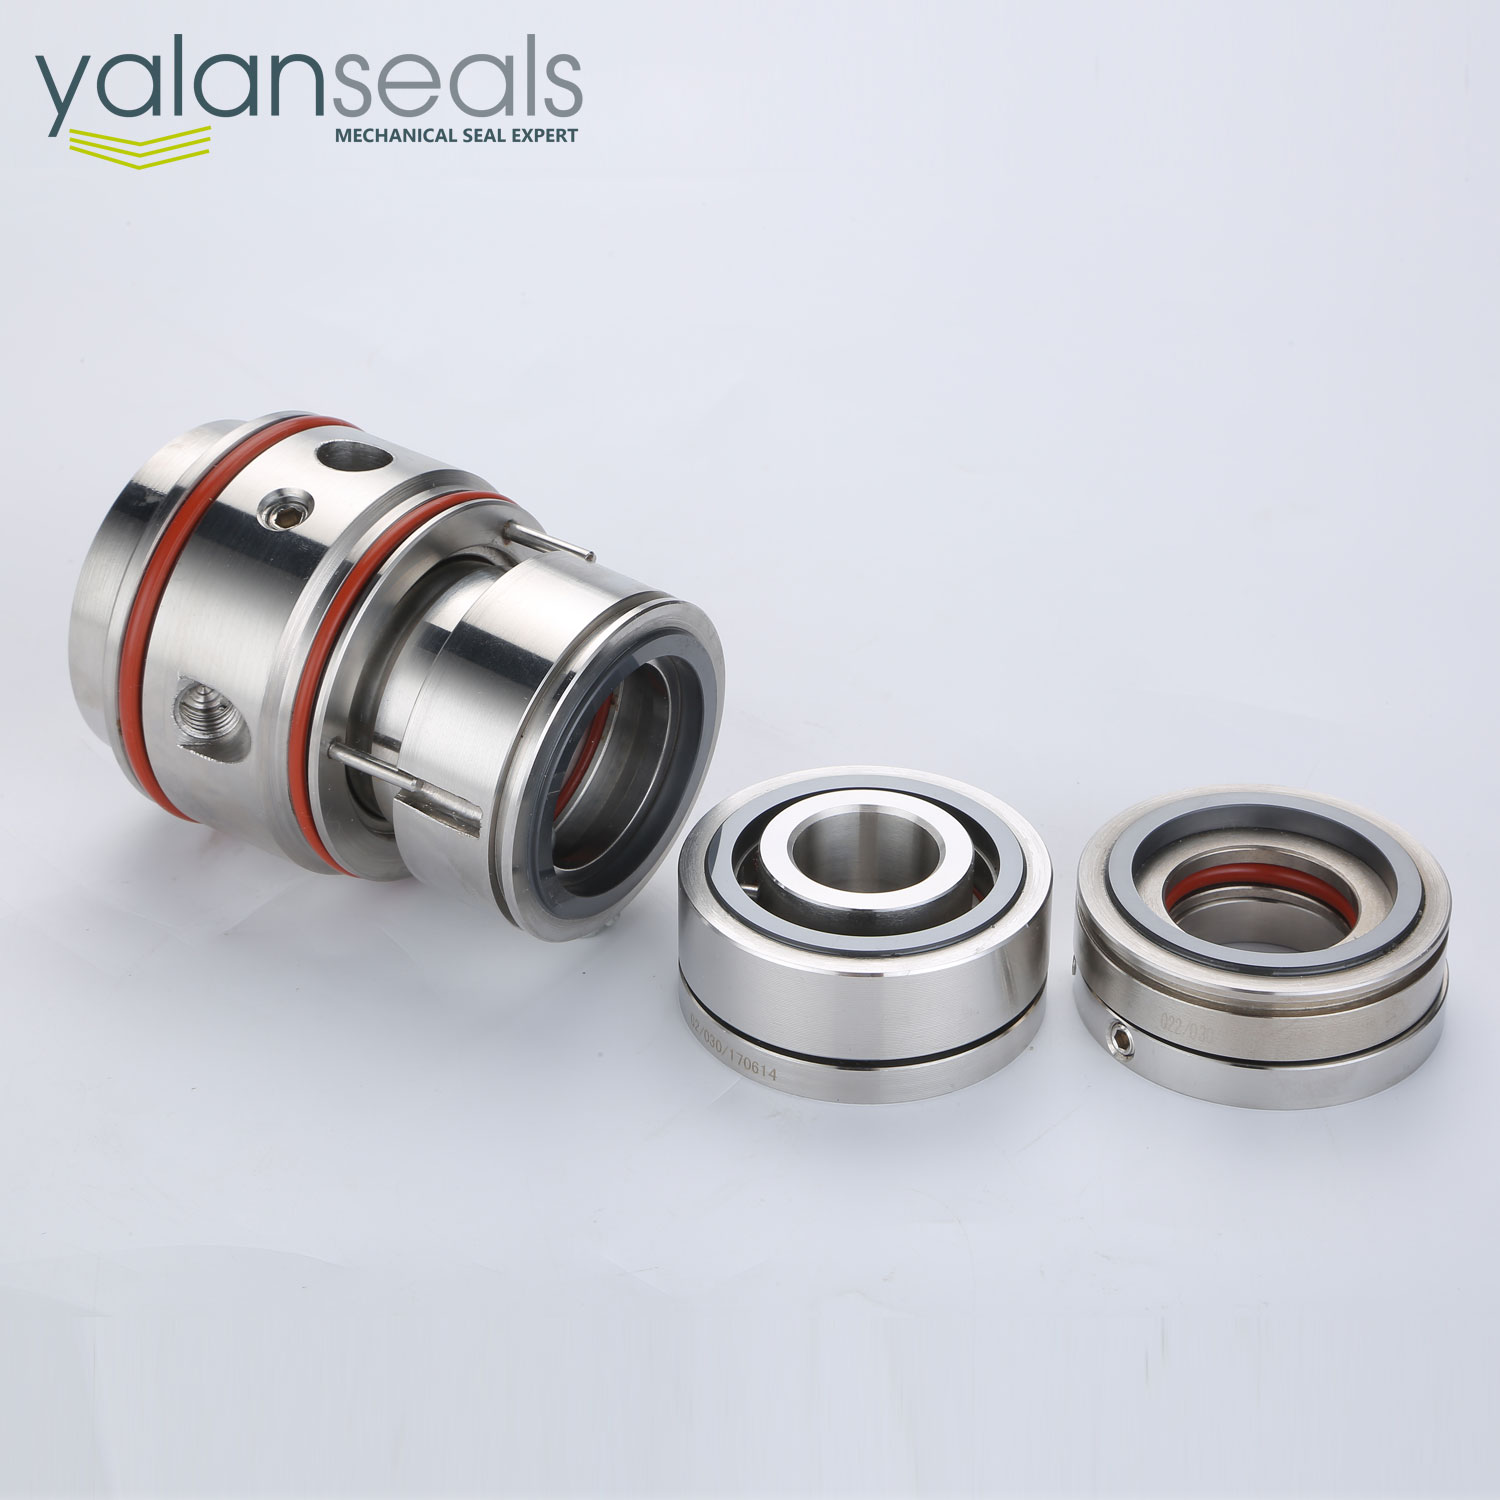 JCS2 Double End Mechanical Seal